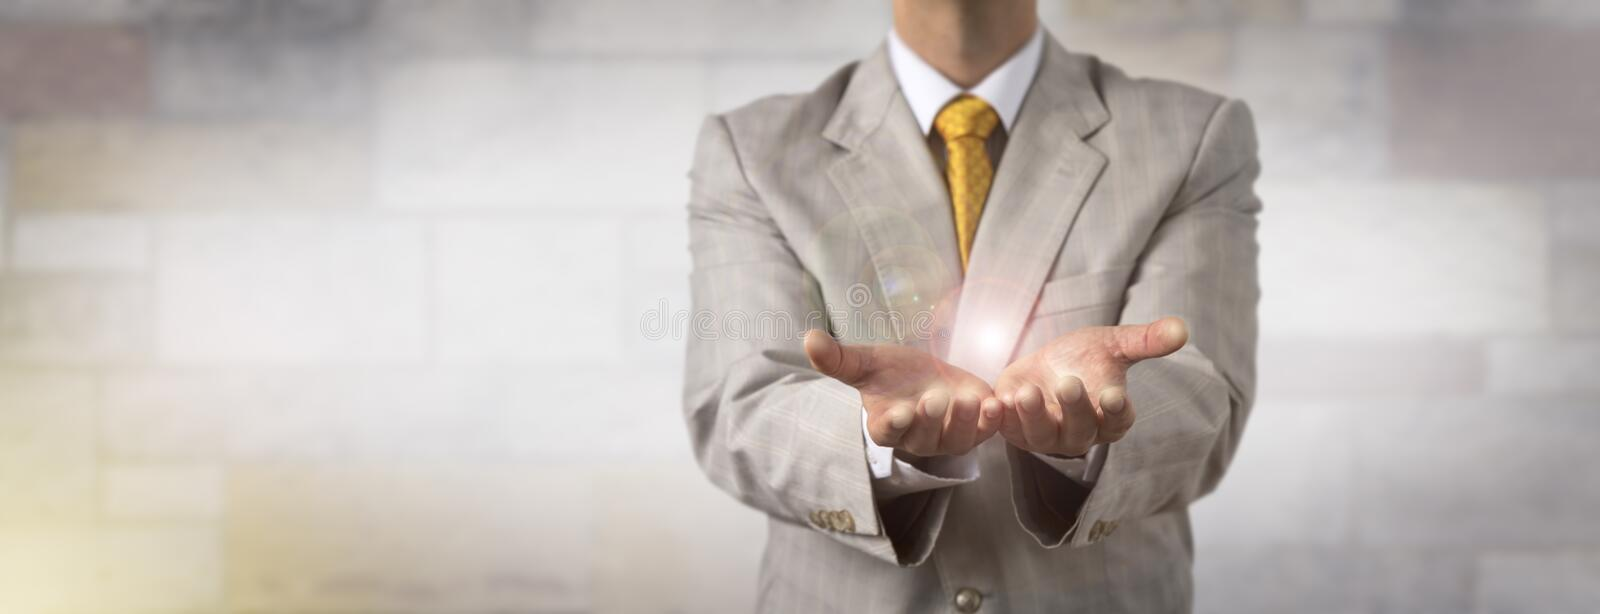 Man Presenting Empty Copy Space In Open Hands royalty free stock image